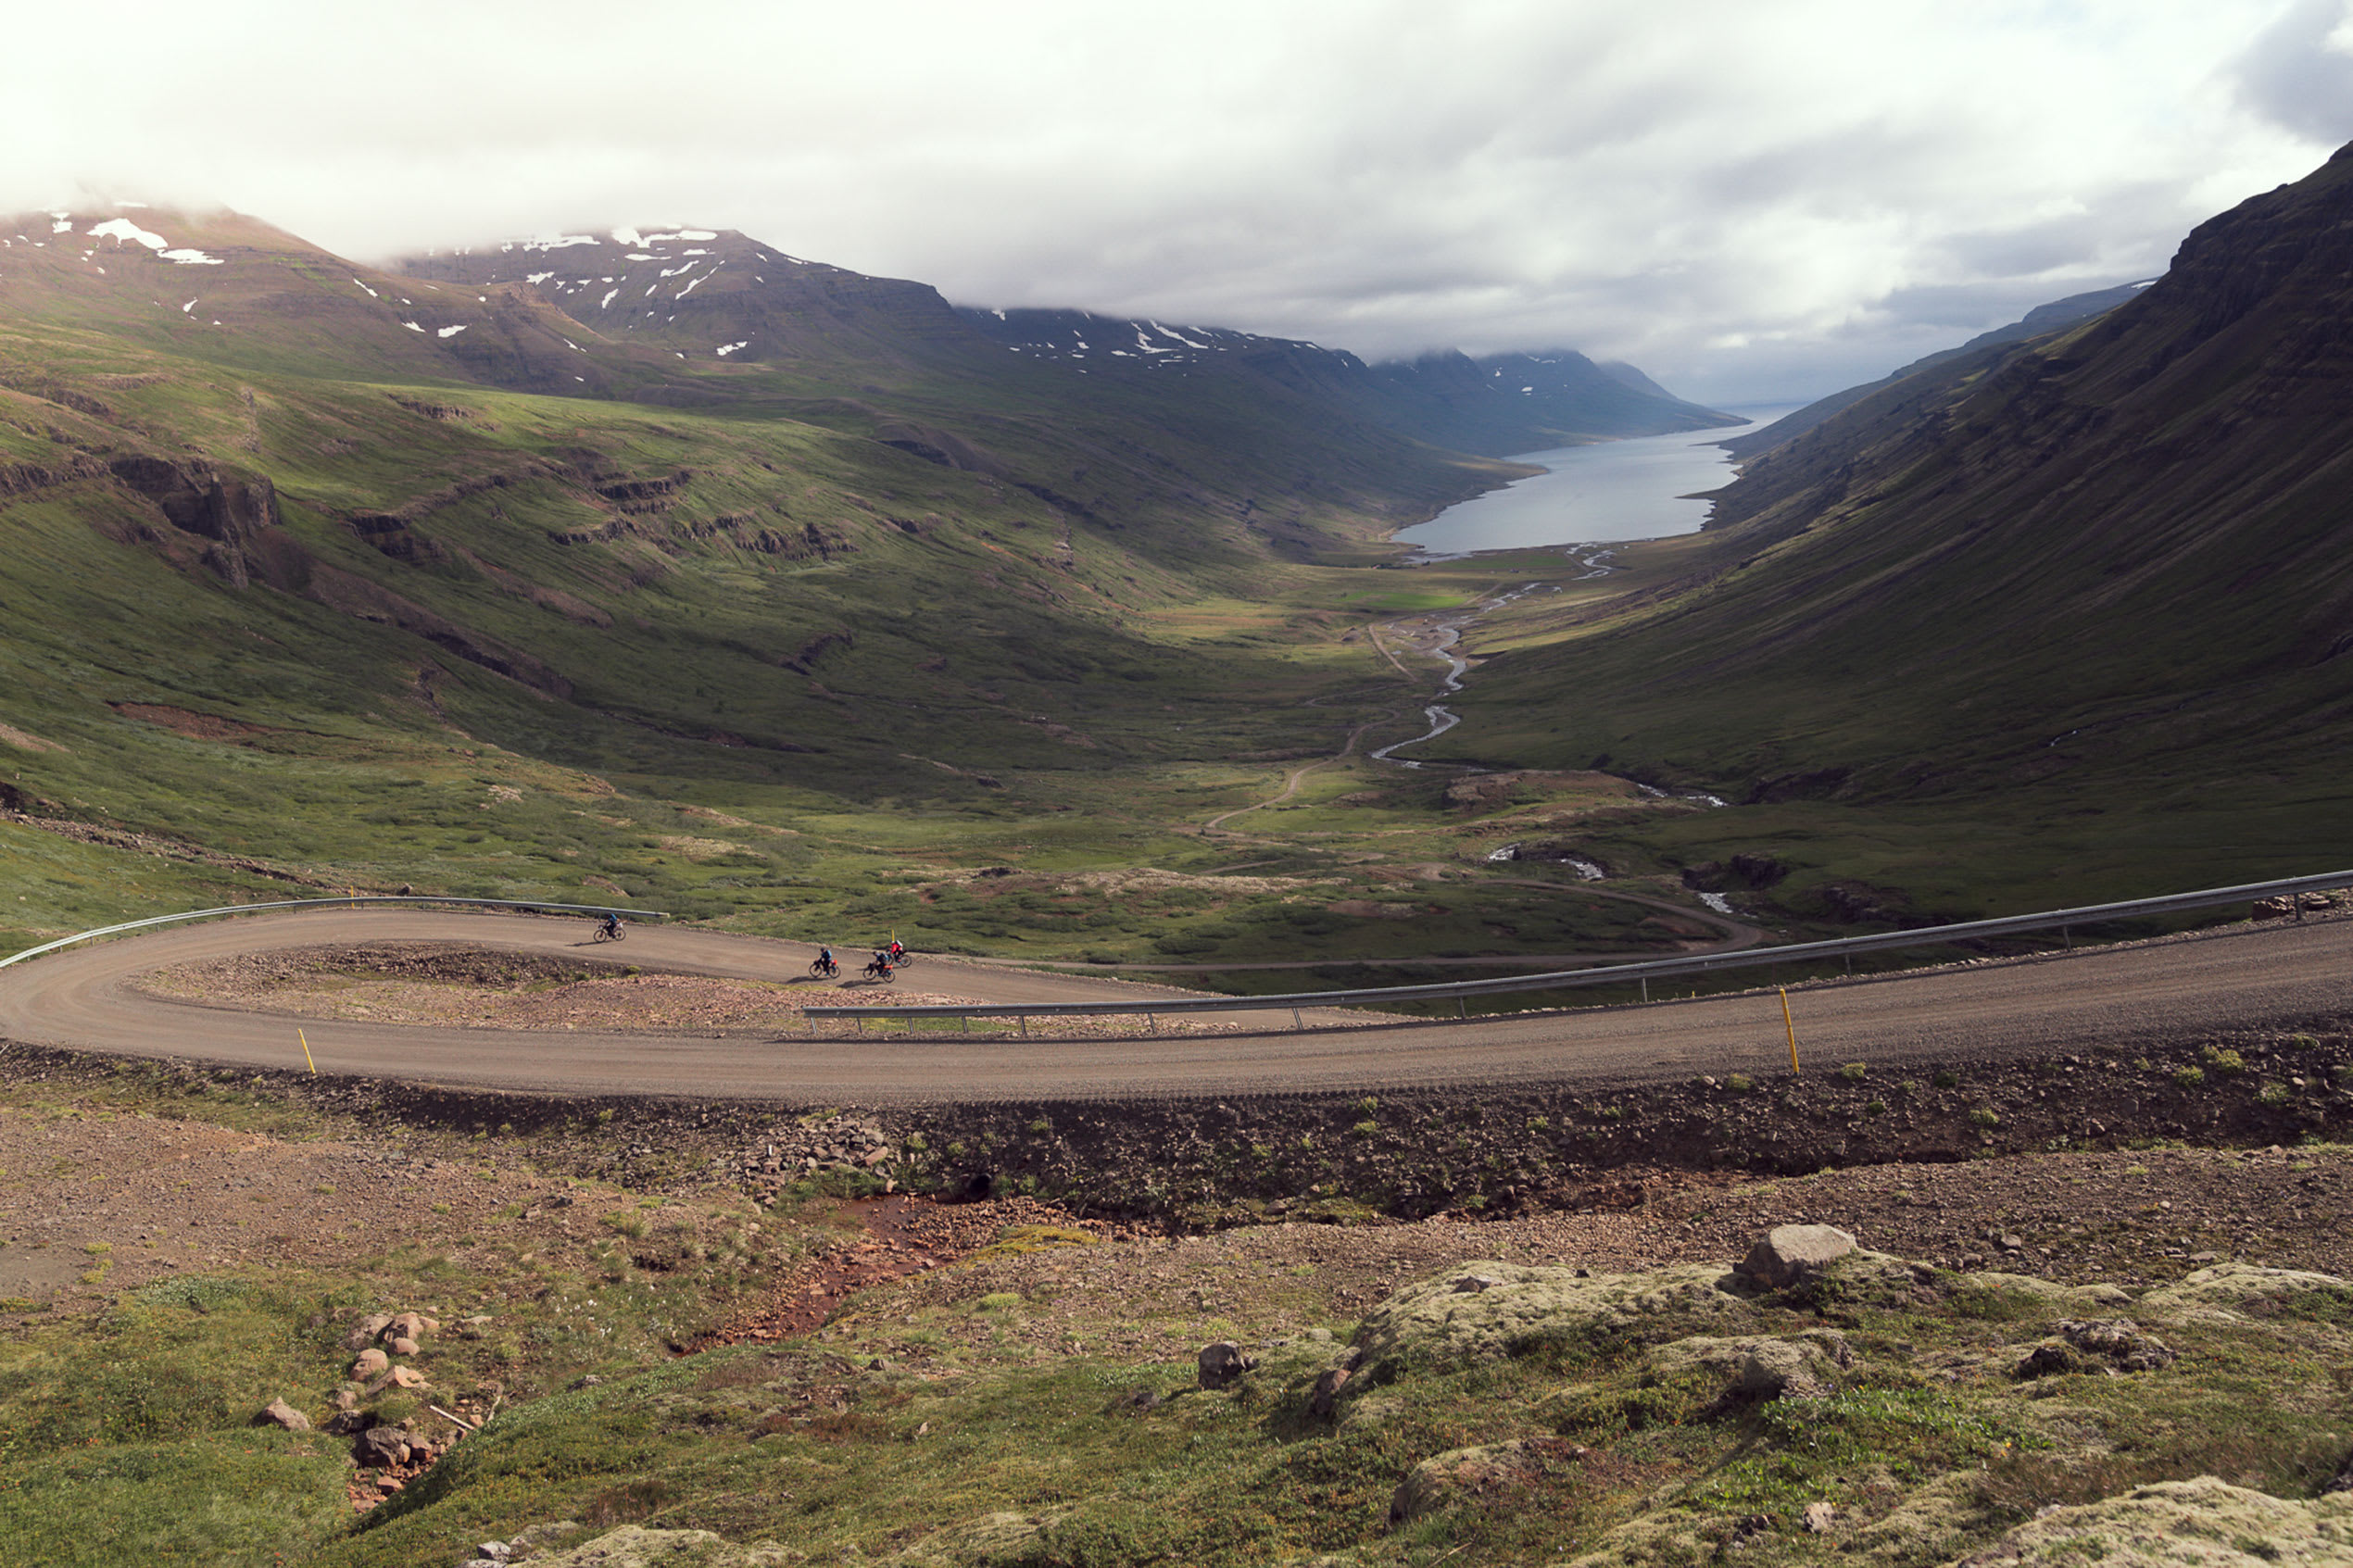 a view of a road weaving down into a fjord in Iceland, with water visible in the far distance